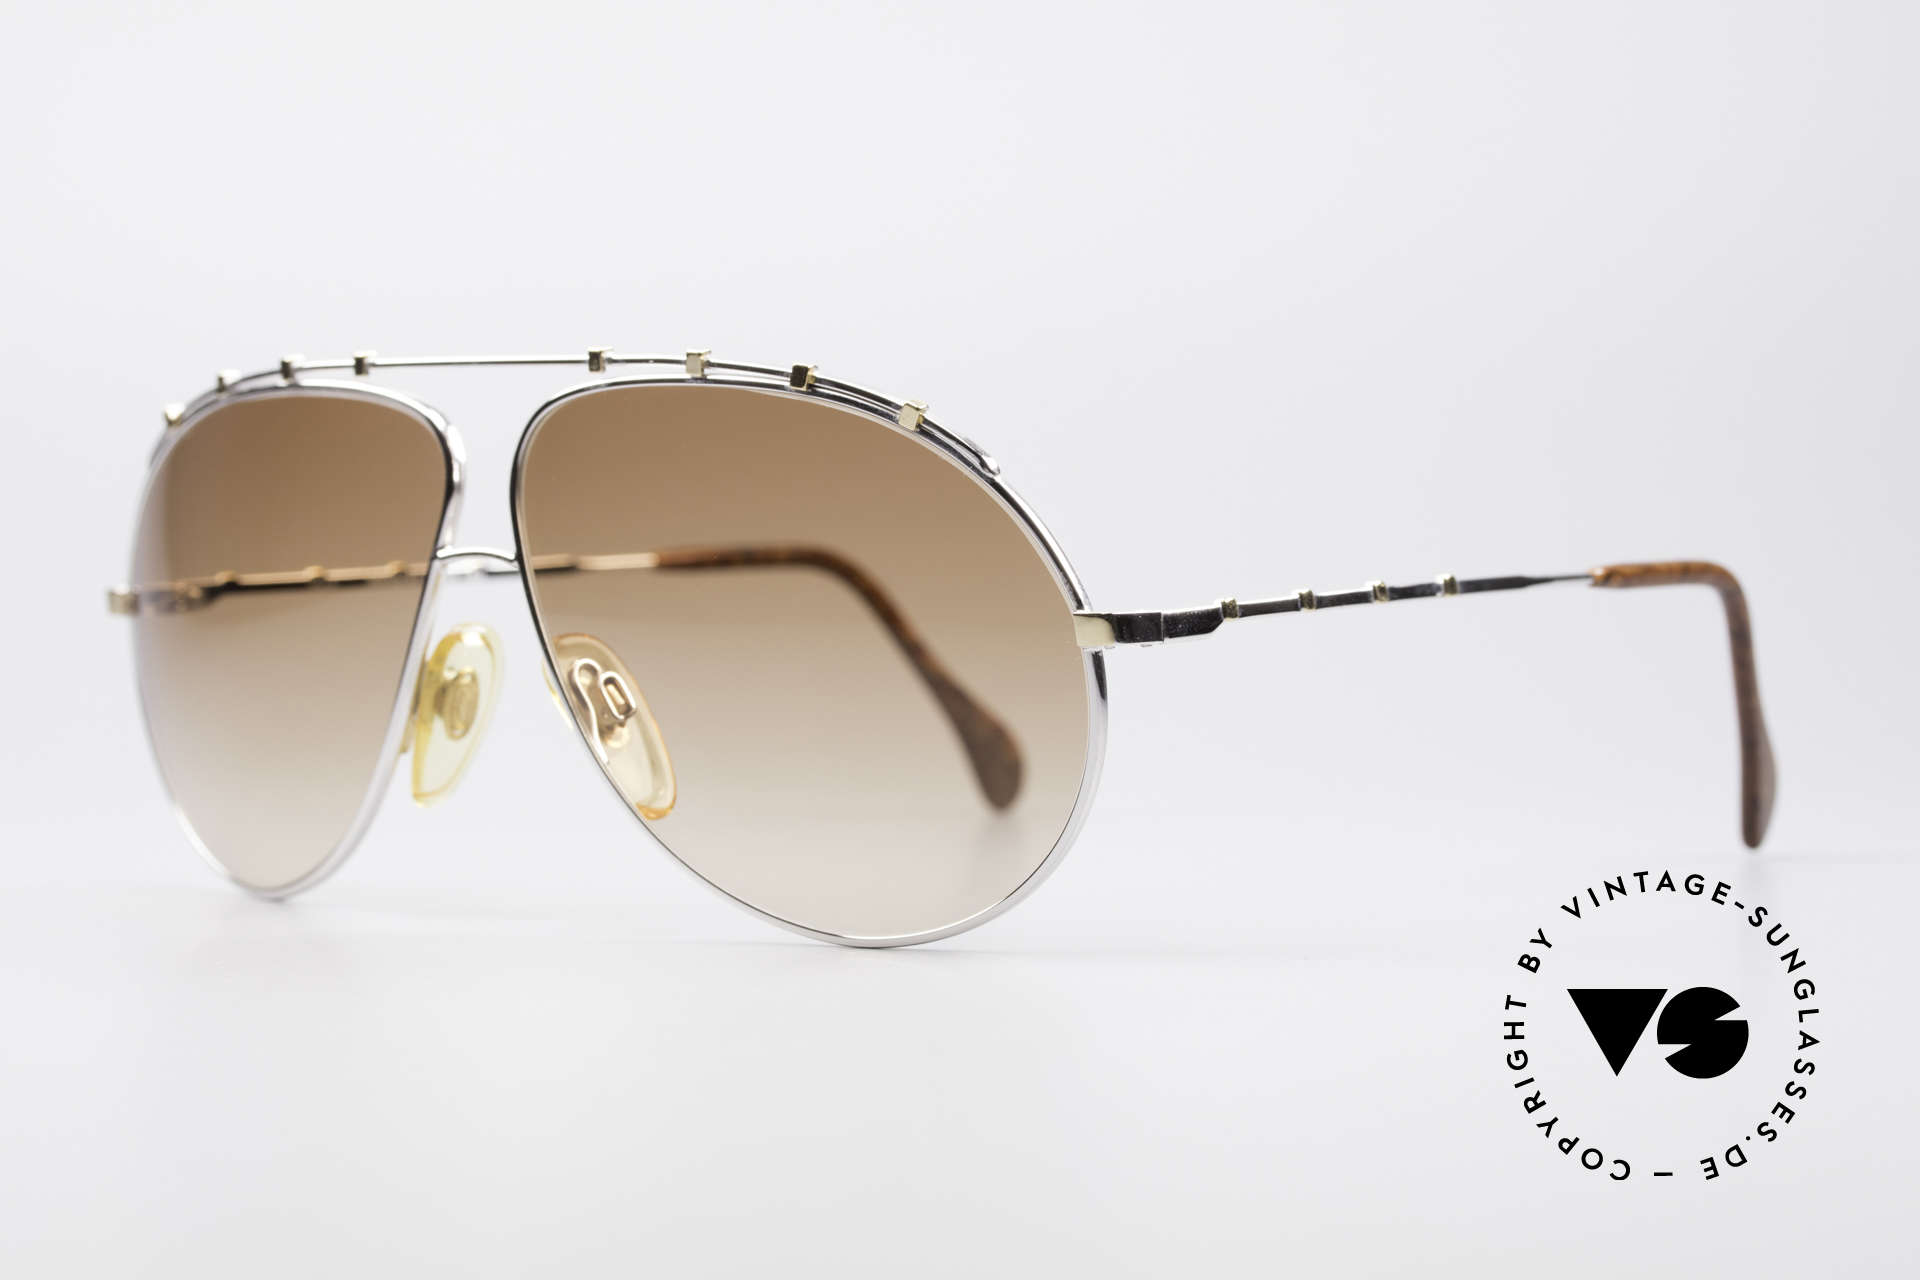 Zollitsch Marquise Rare Vintage Sunglasses, stylish silver designer piece with small golden rivets, Made for Men